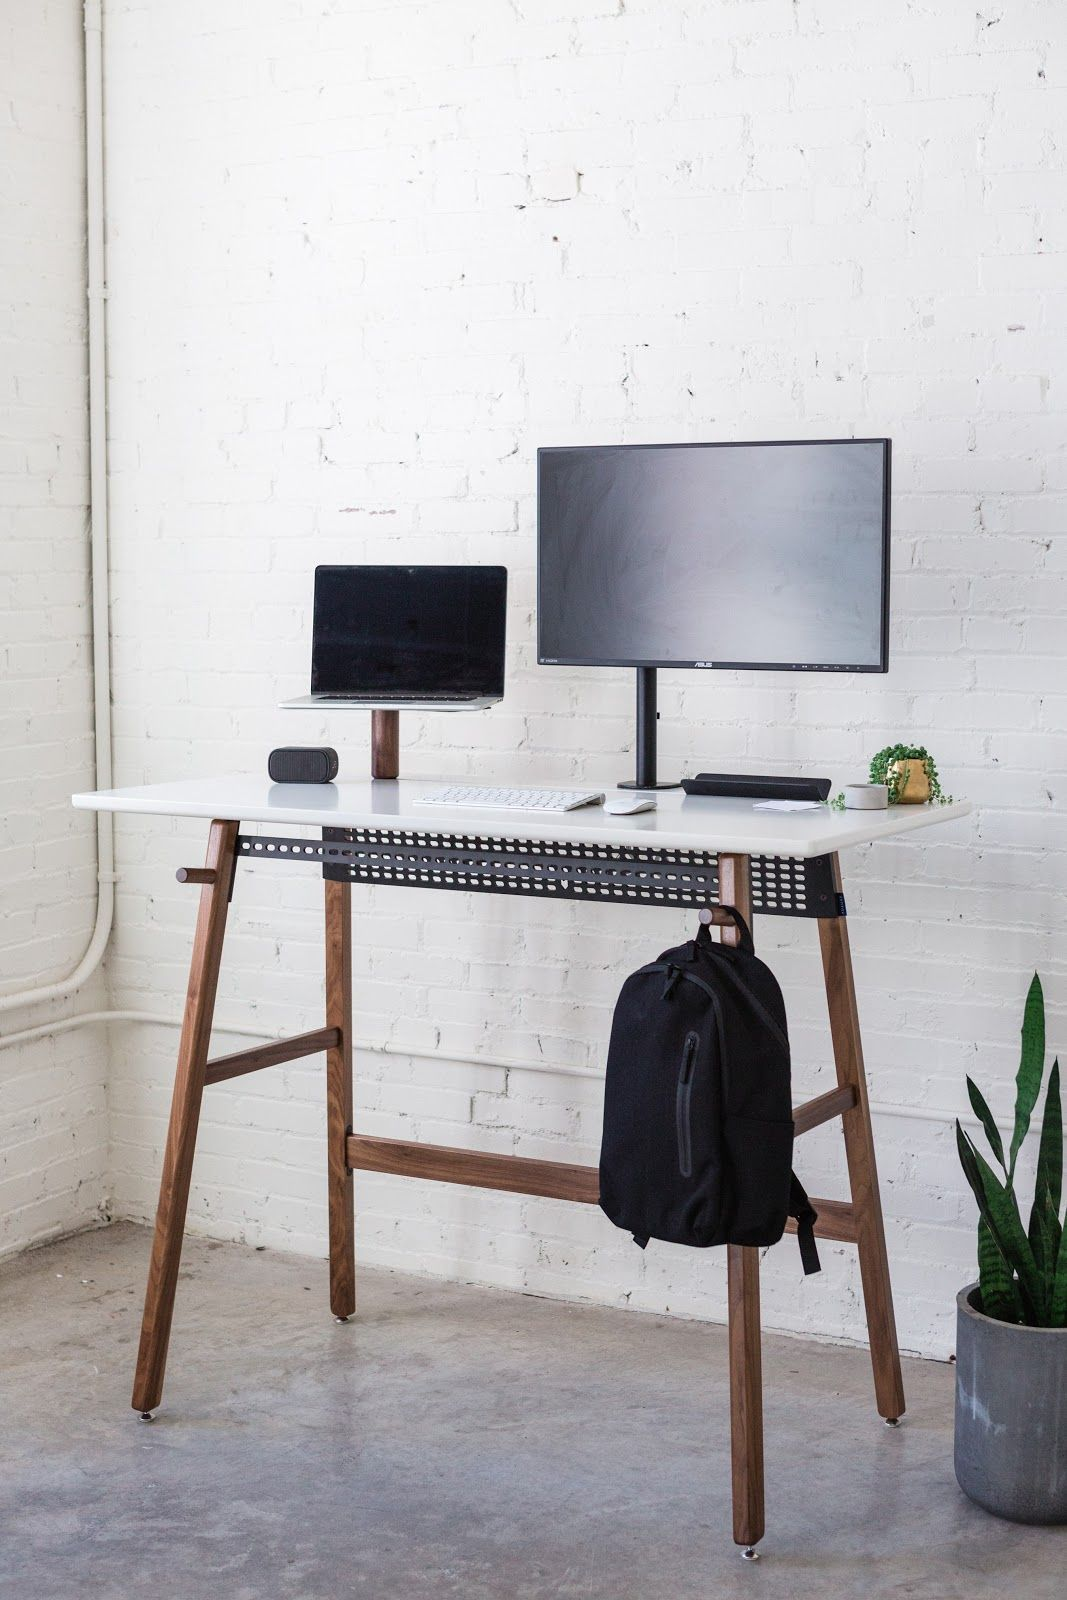 Standing Desk 02 Home Office Decor Desk Design Home Office Design